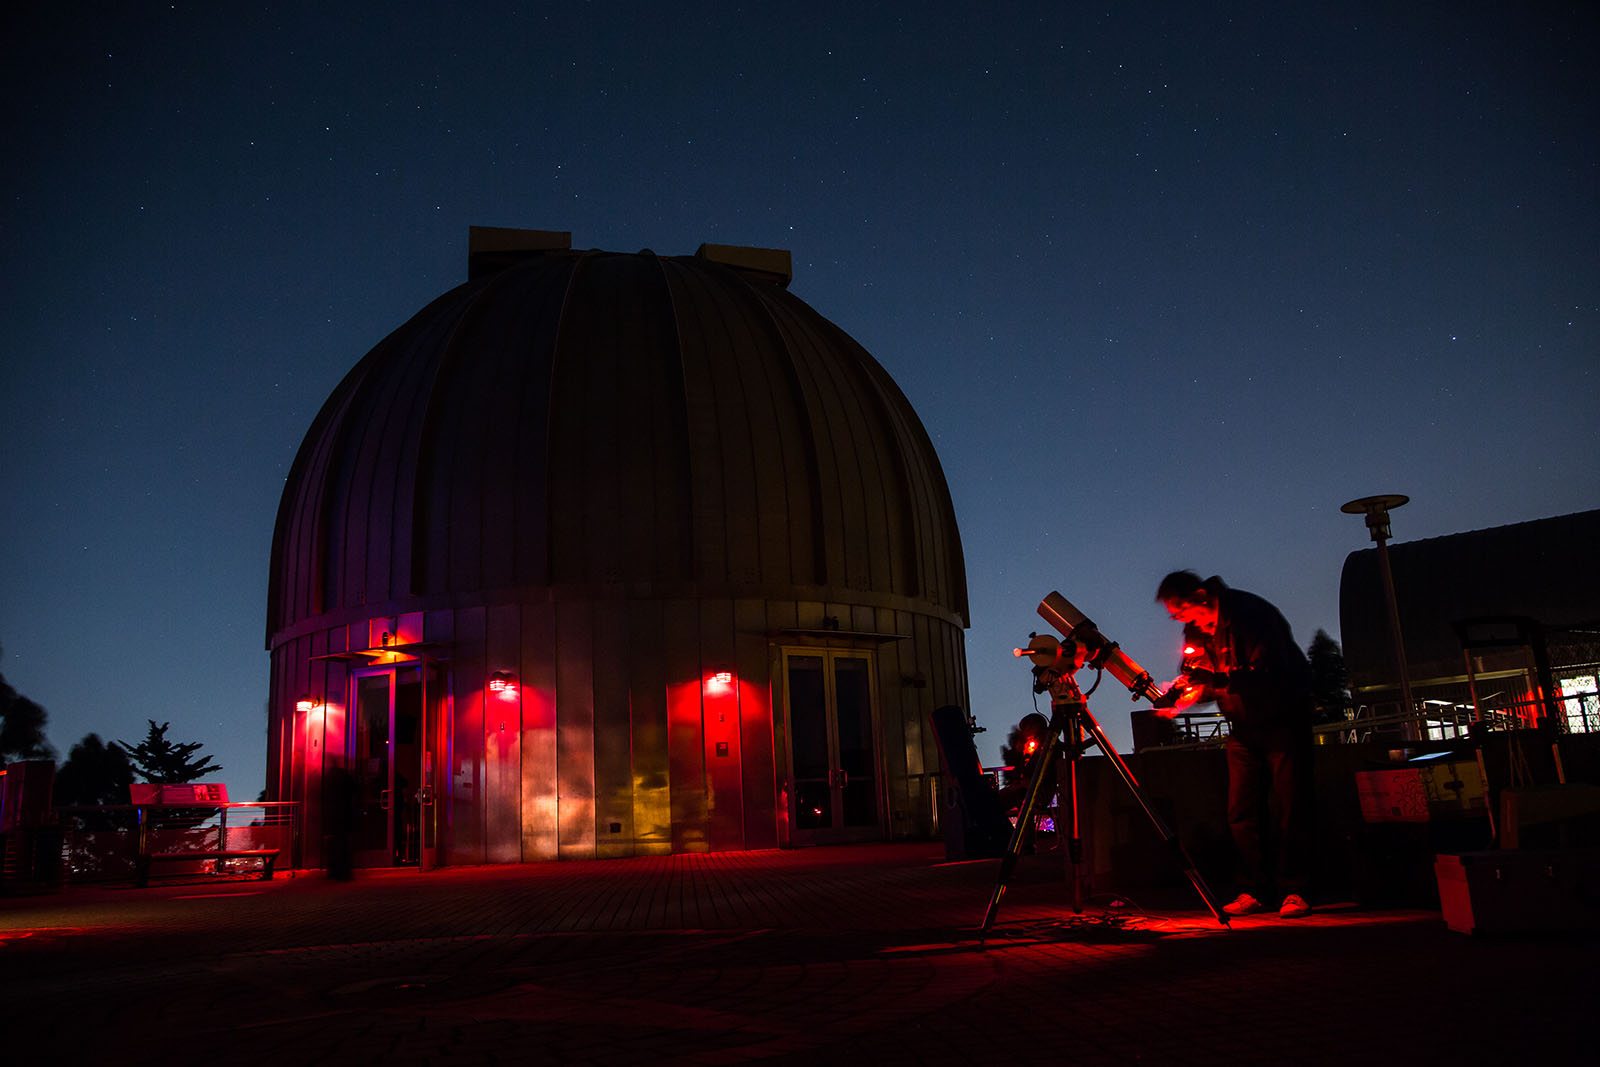 Find a Telescope Workshop to Watch the Skies DIY Style